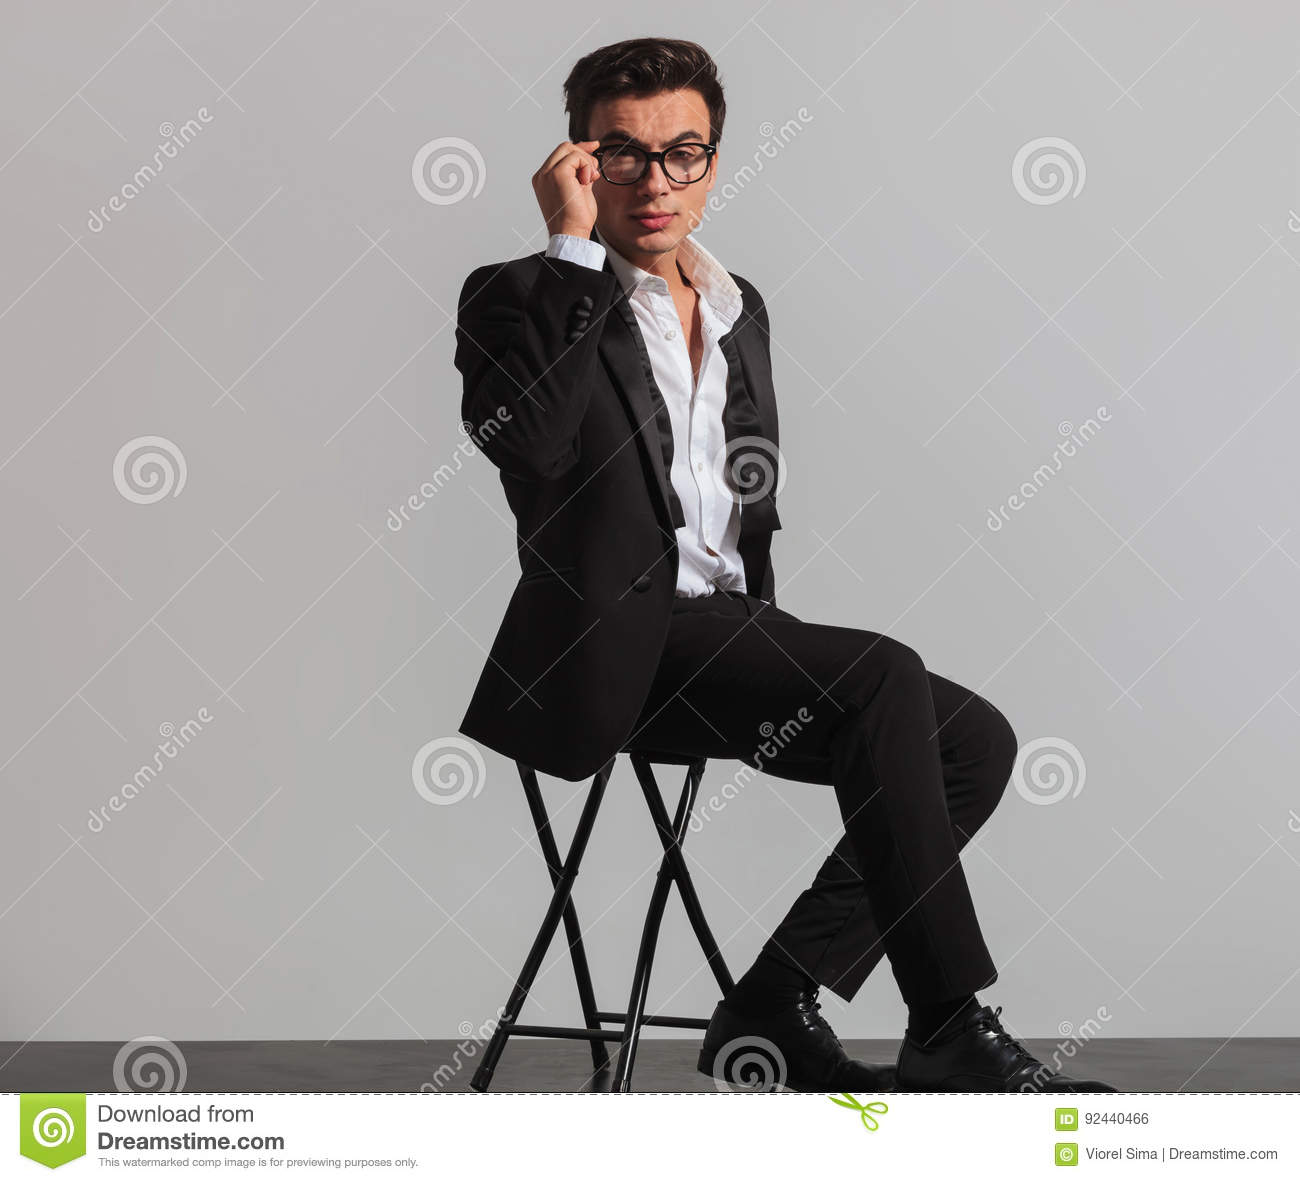 751792703613 Seated elegant man in tuxedo and undone bowtie fixing his glasses in studio